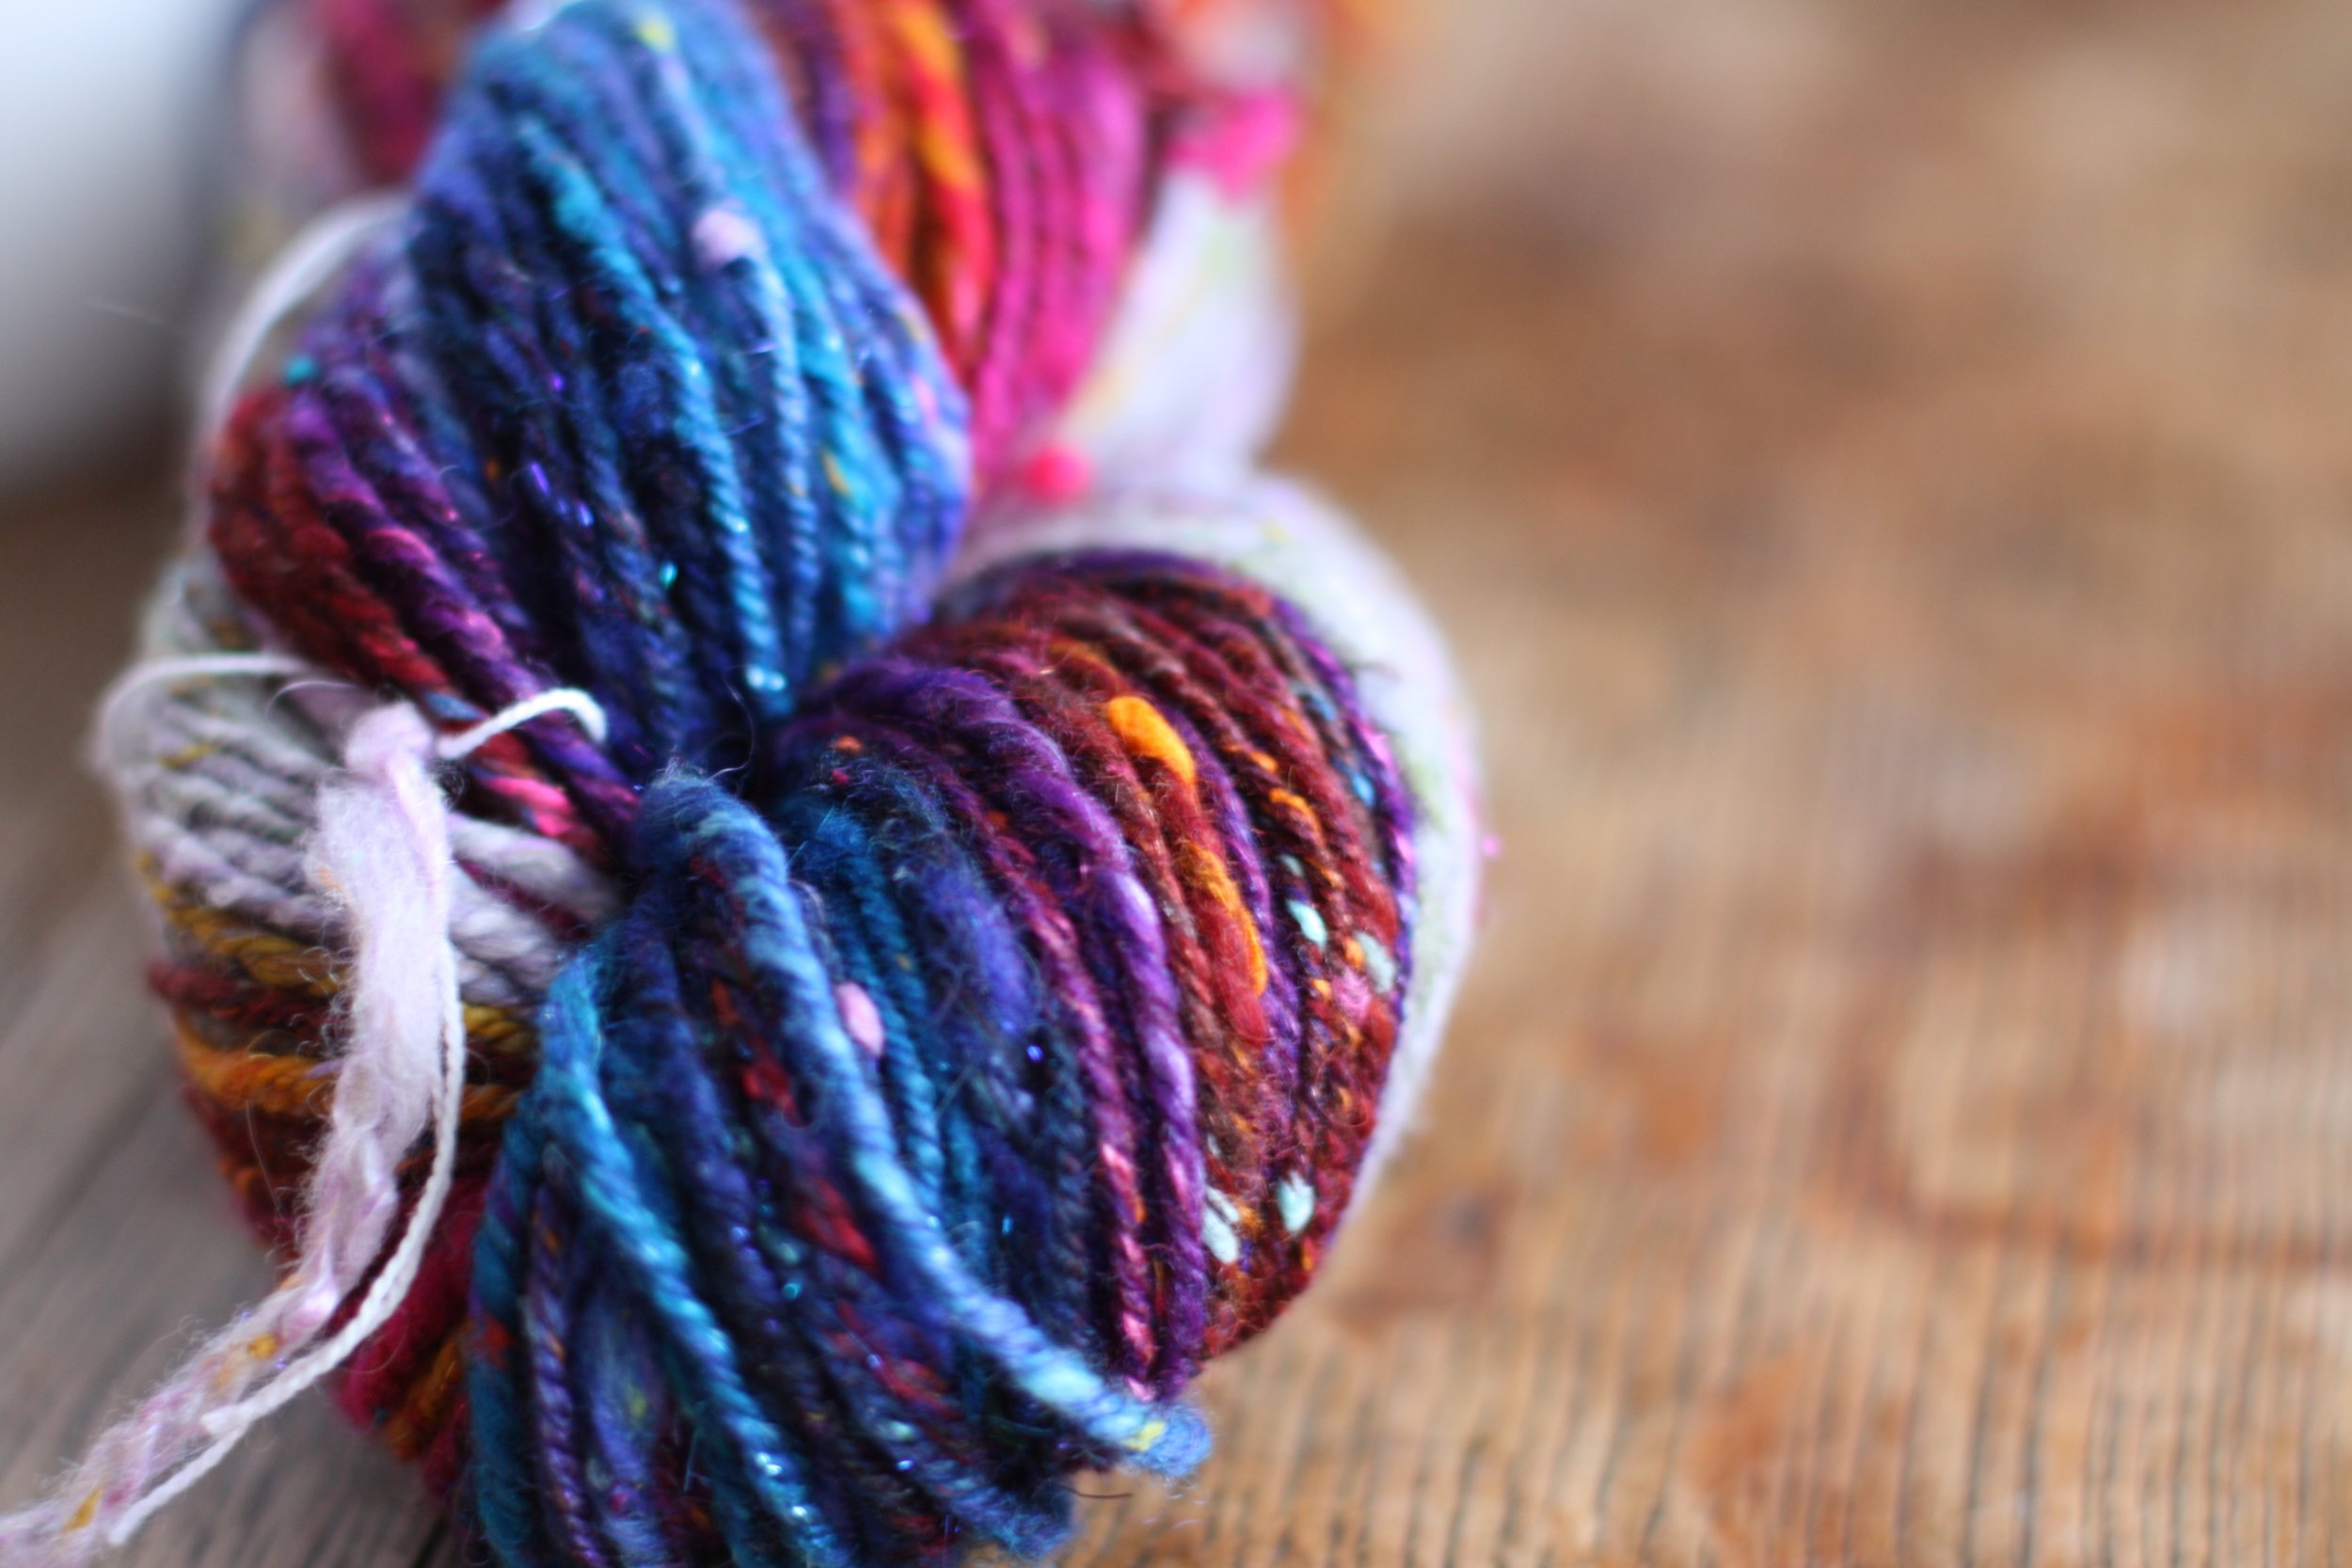 Handspun textured yarn in jewel tones from Inglenook's 12 Days of Christmas spinalong